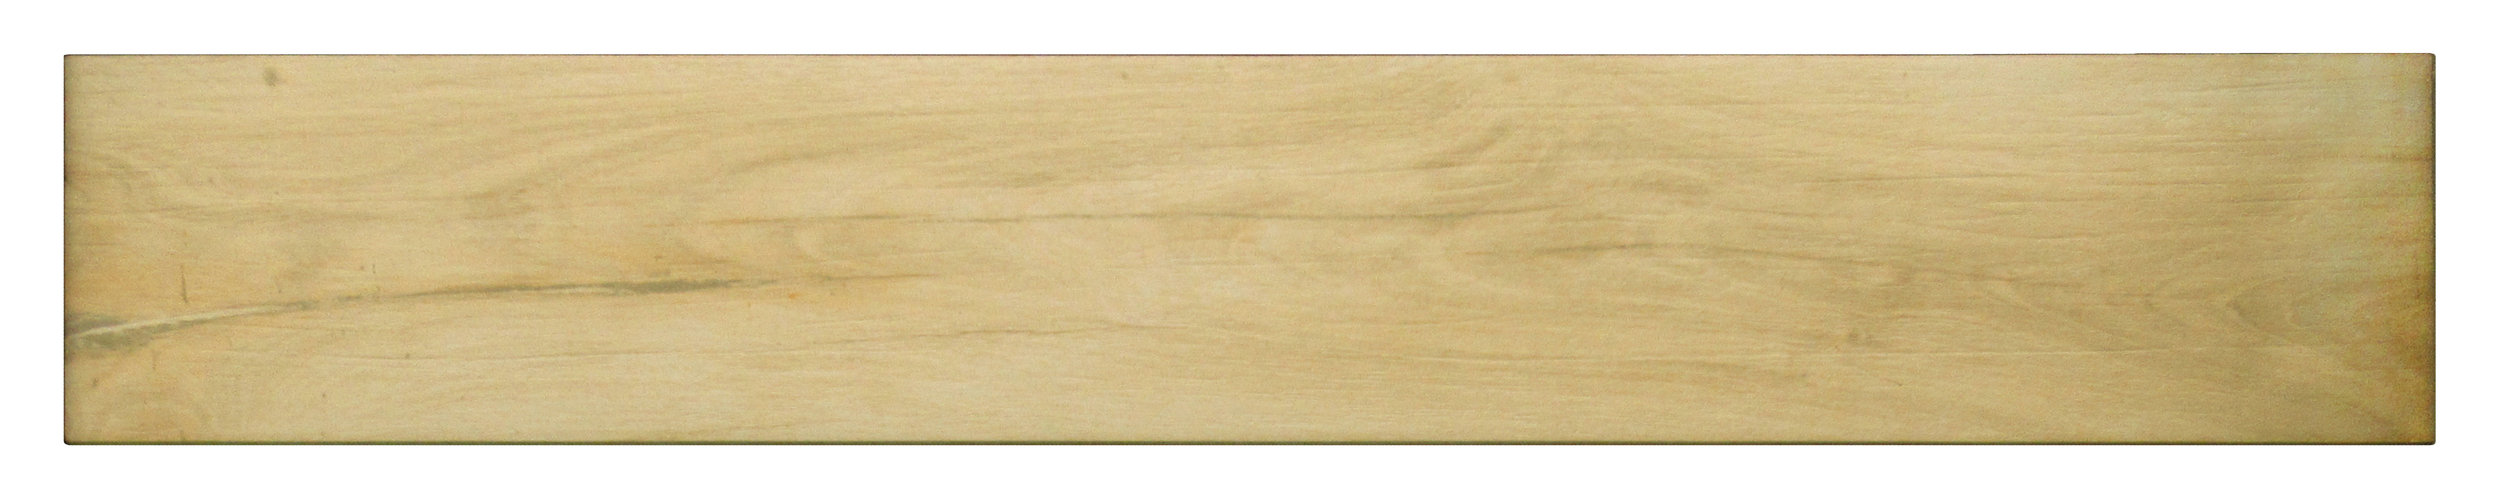 "Nevers Beige  - 9"" x 36"" Porcelain"